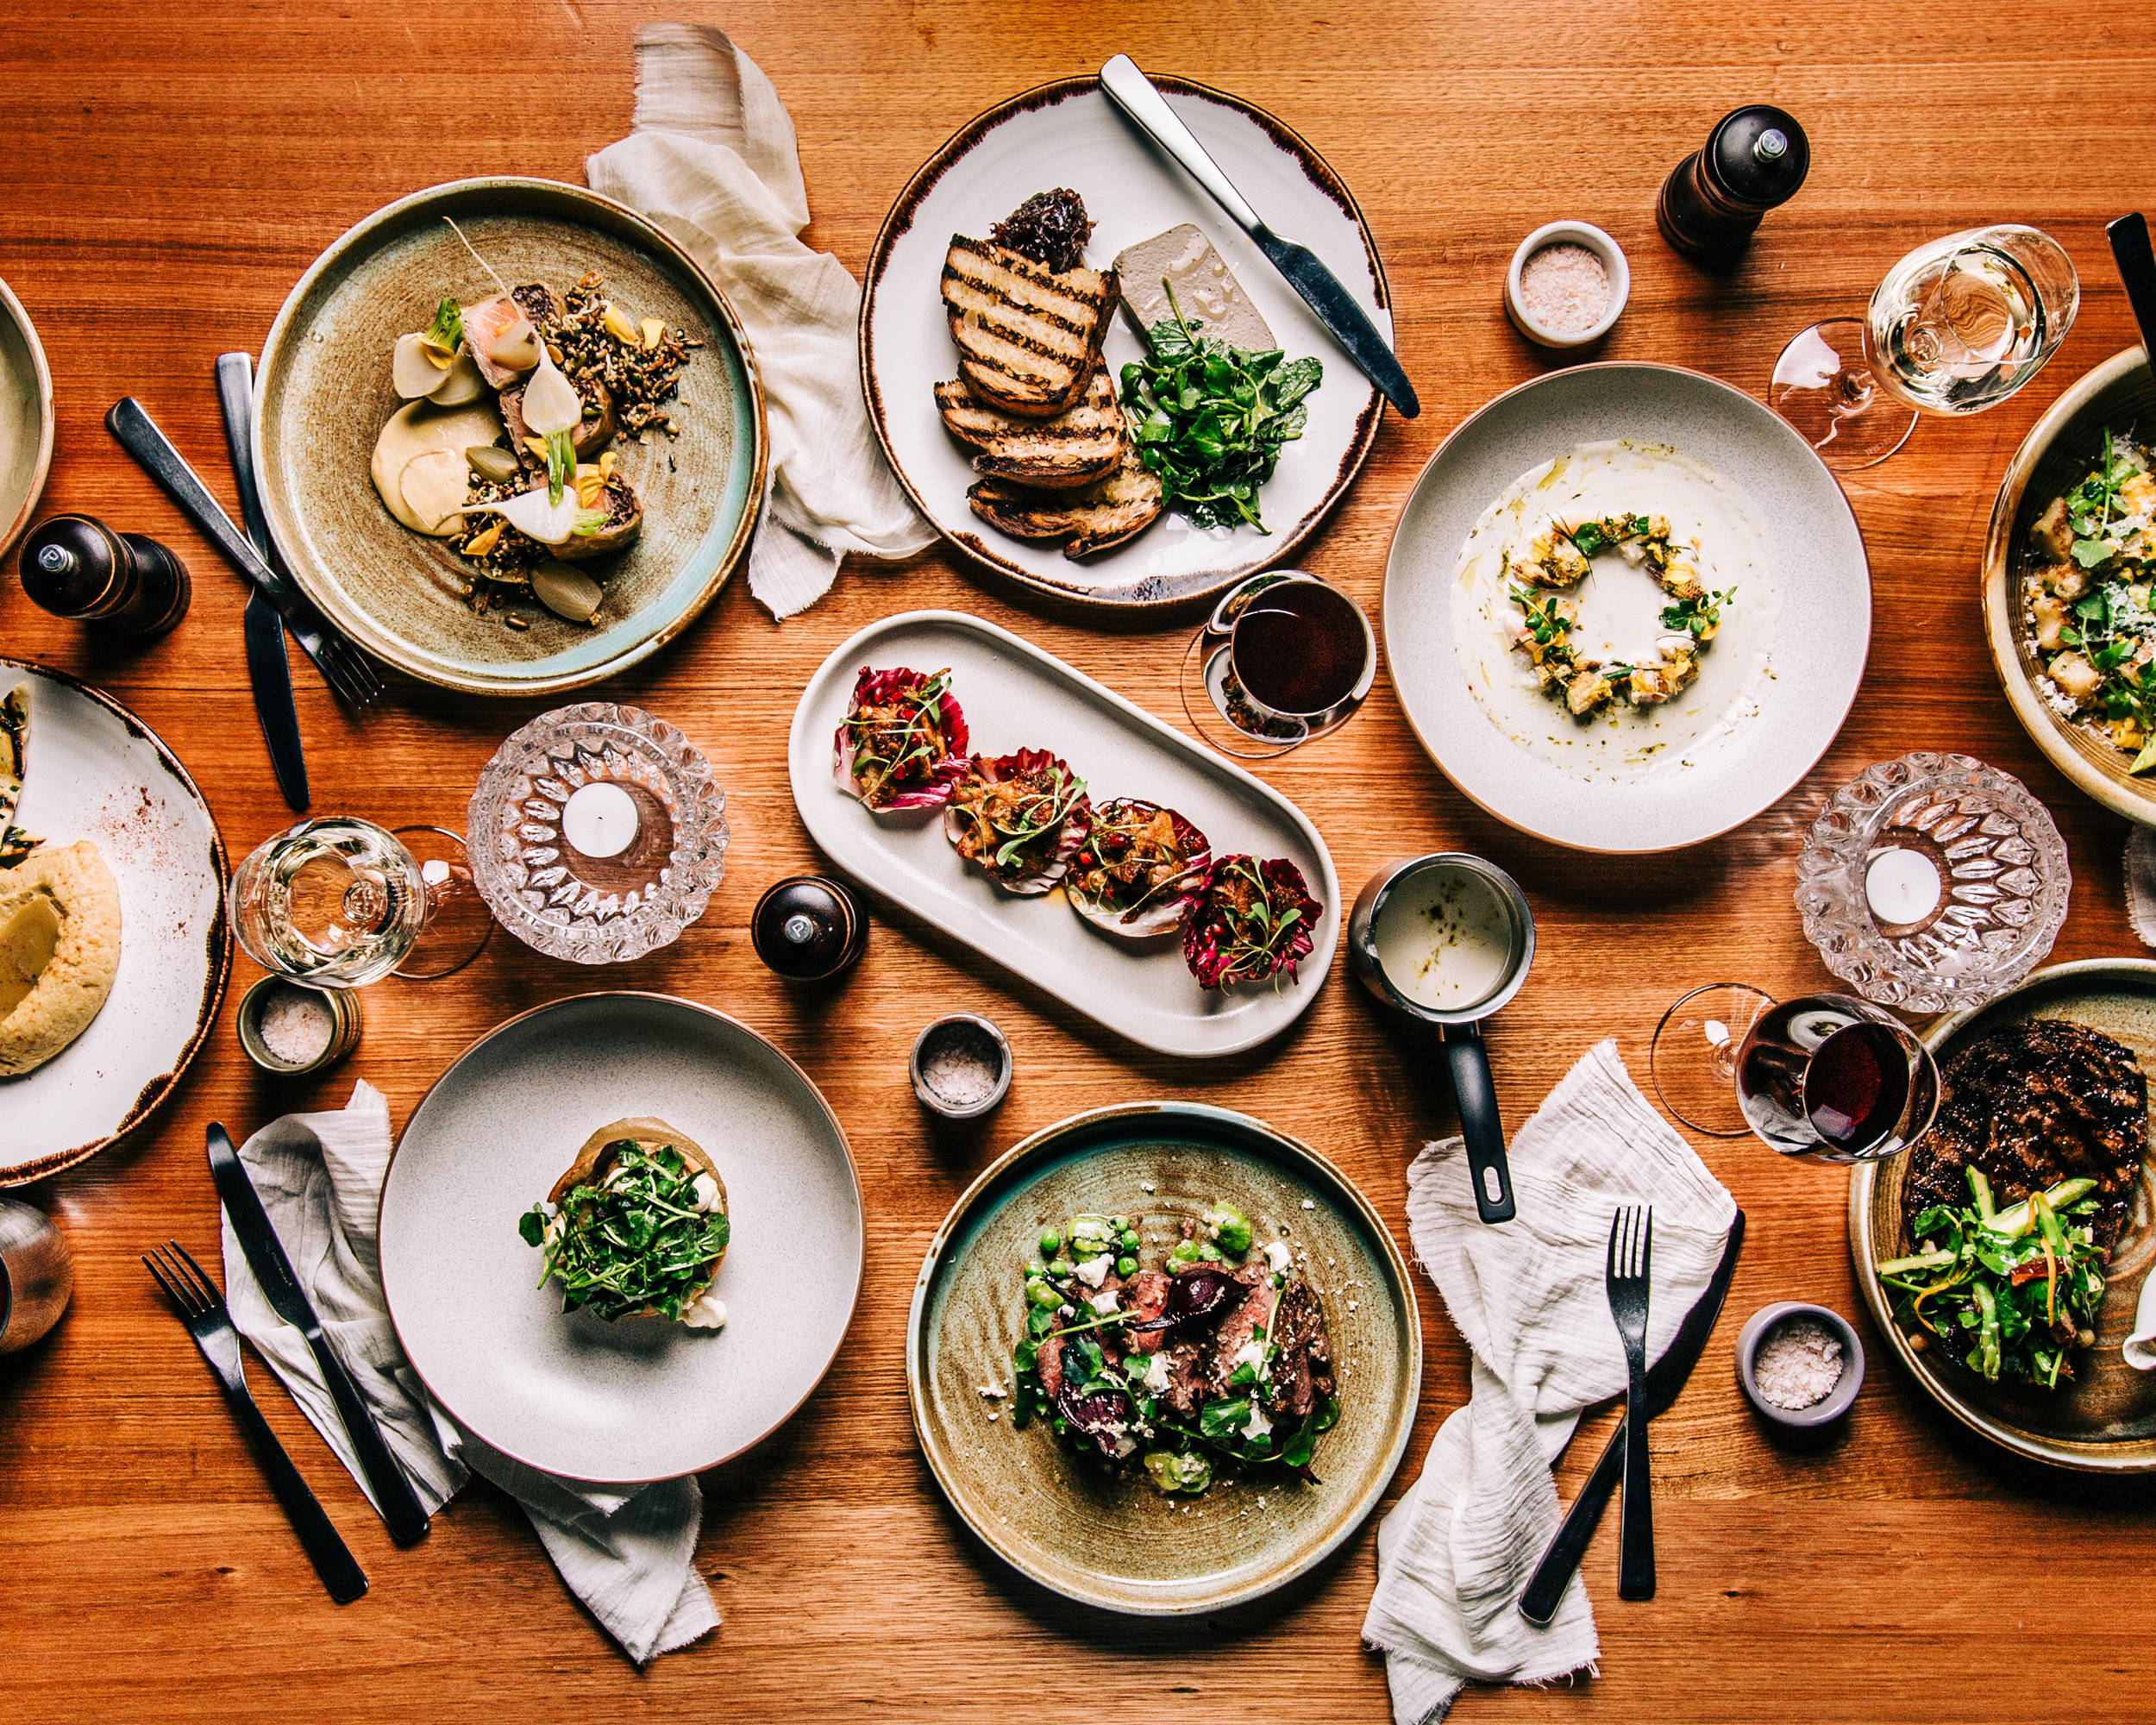 Have you seen  Luke's Kitchen's Father's Day Lunch?  3 course choice menu + canapés on arrival + Two Sons Lager by Asahi or Madame Coco Sparkling on arrival for $80pp